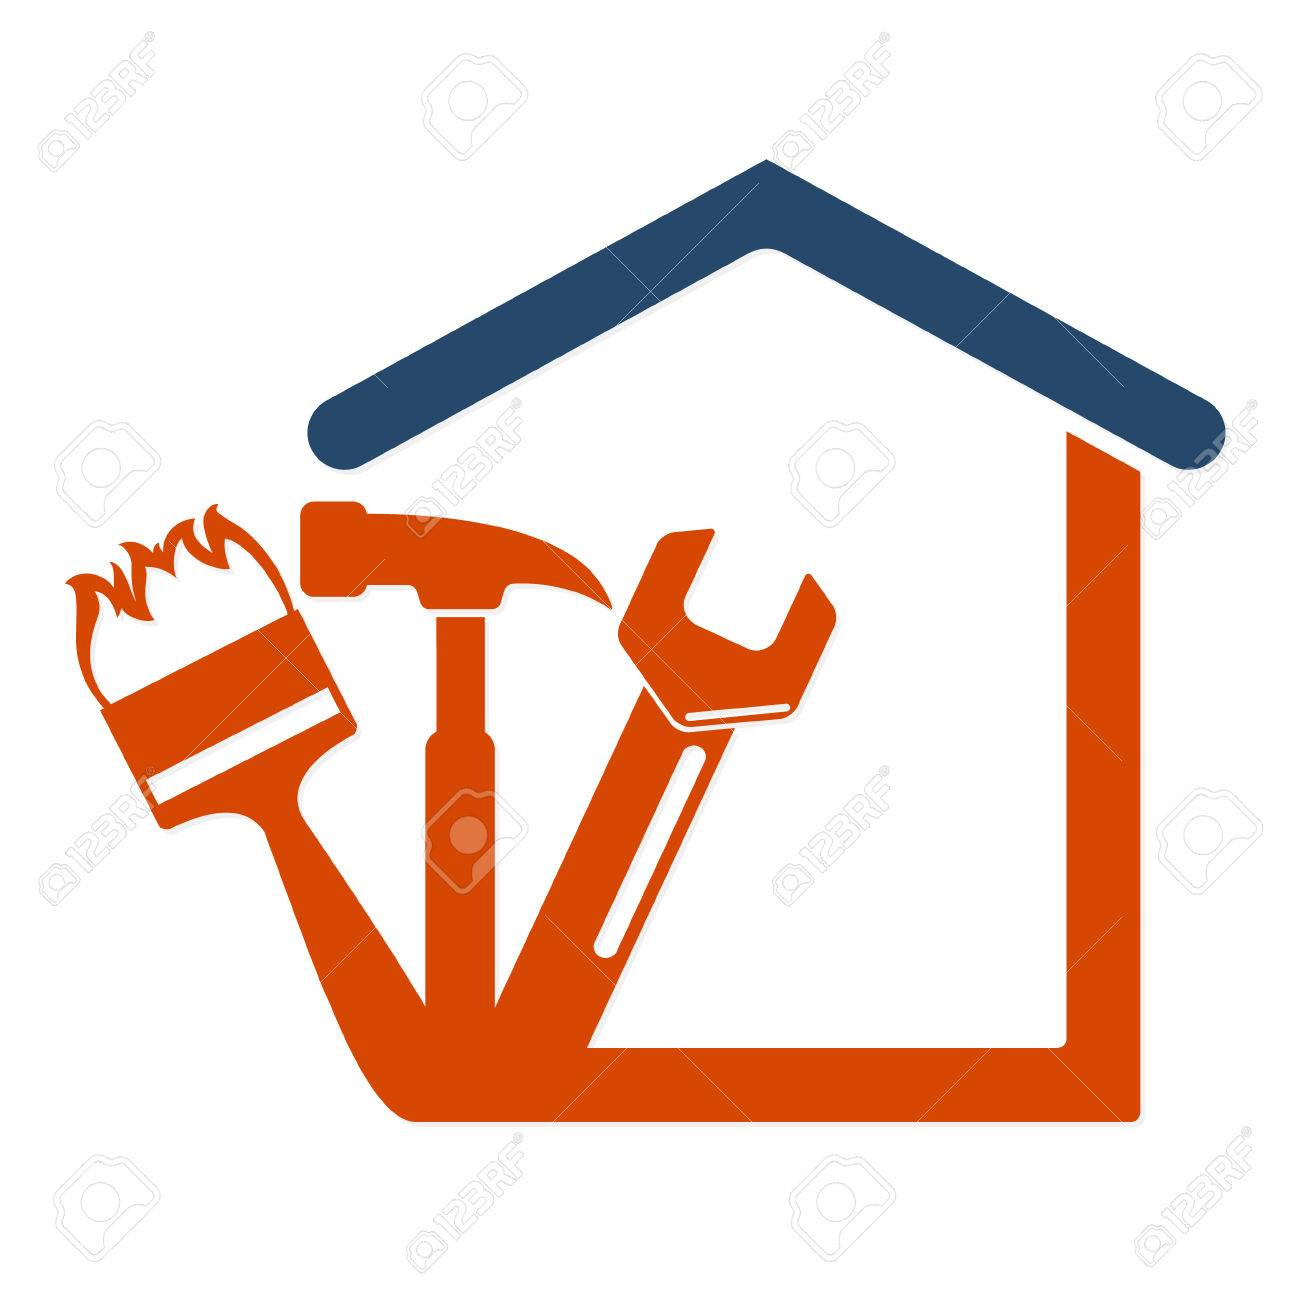 Home repair with the tool symbol vector Business - 68961822